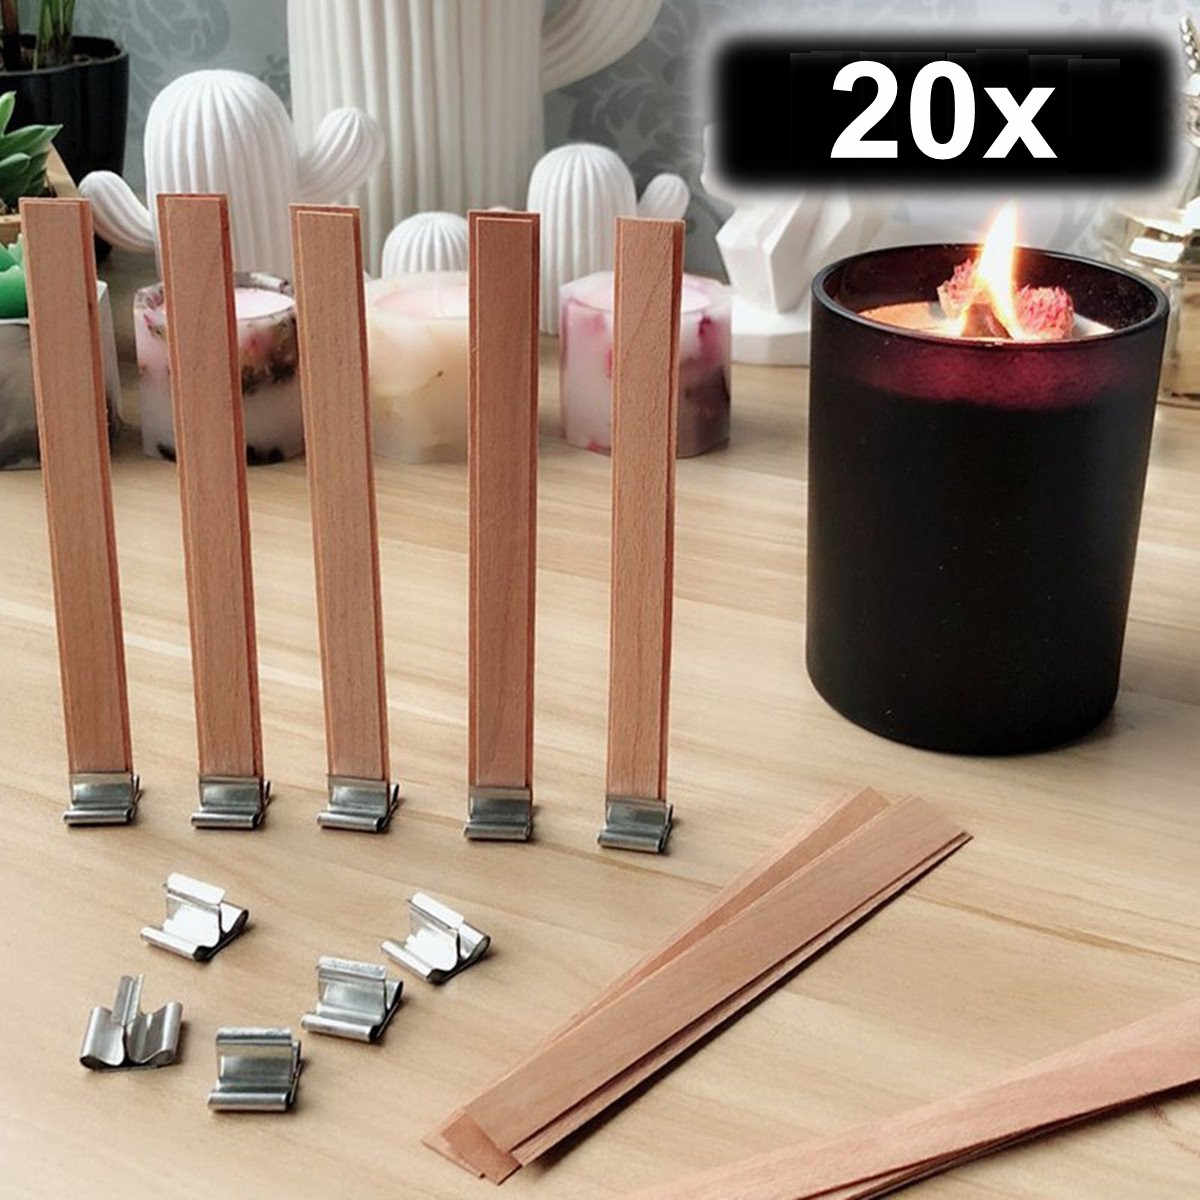 50pcs Wood Candle Wicks Sustainer Tab Candle Base Clip Candle Making Supplies